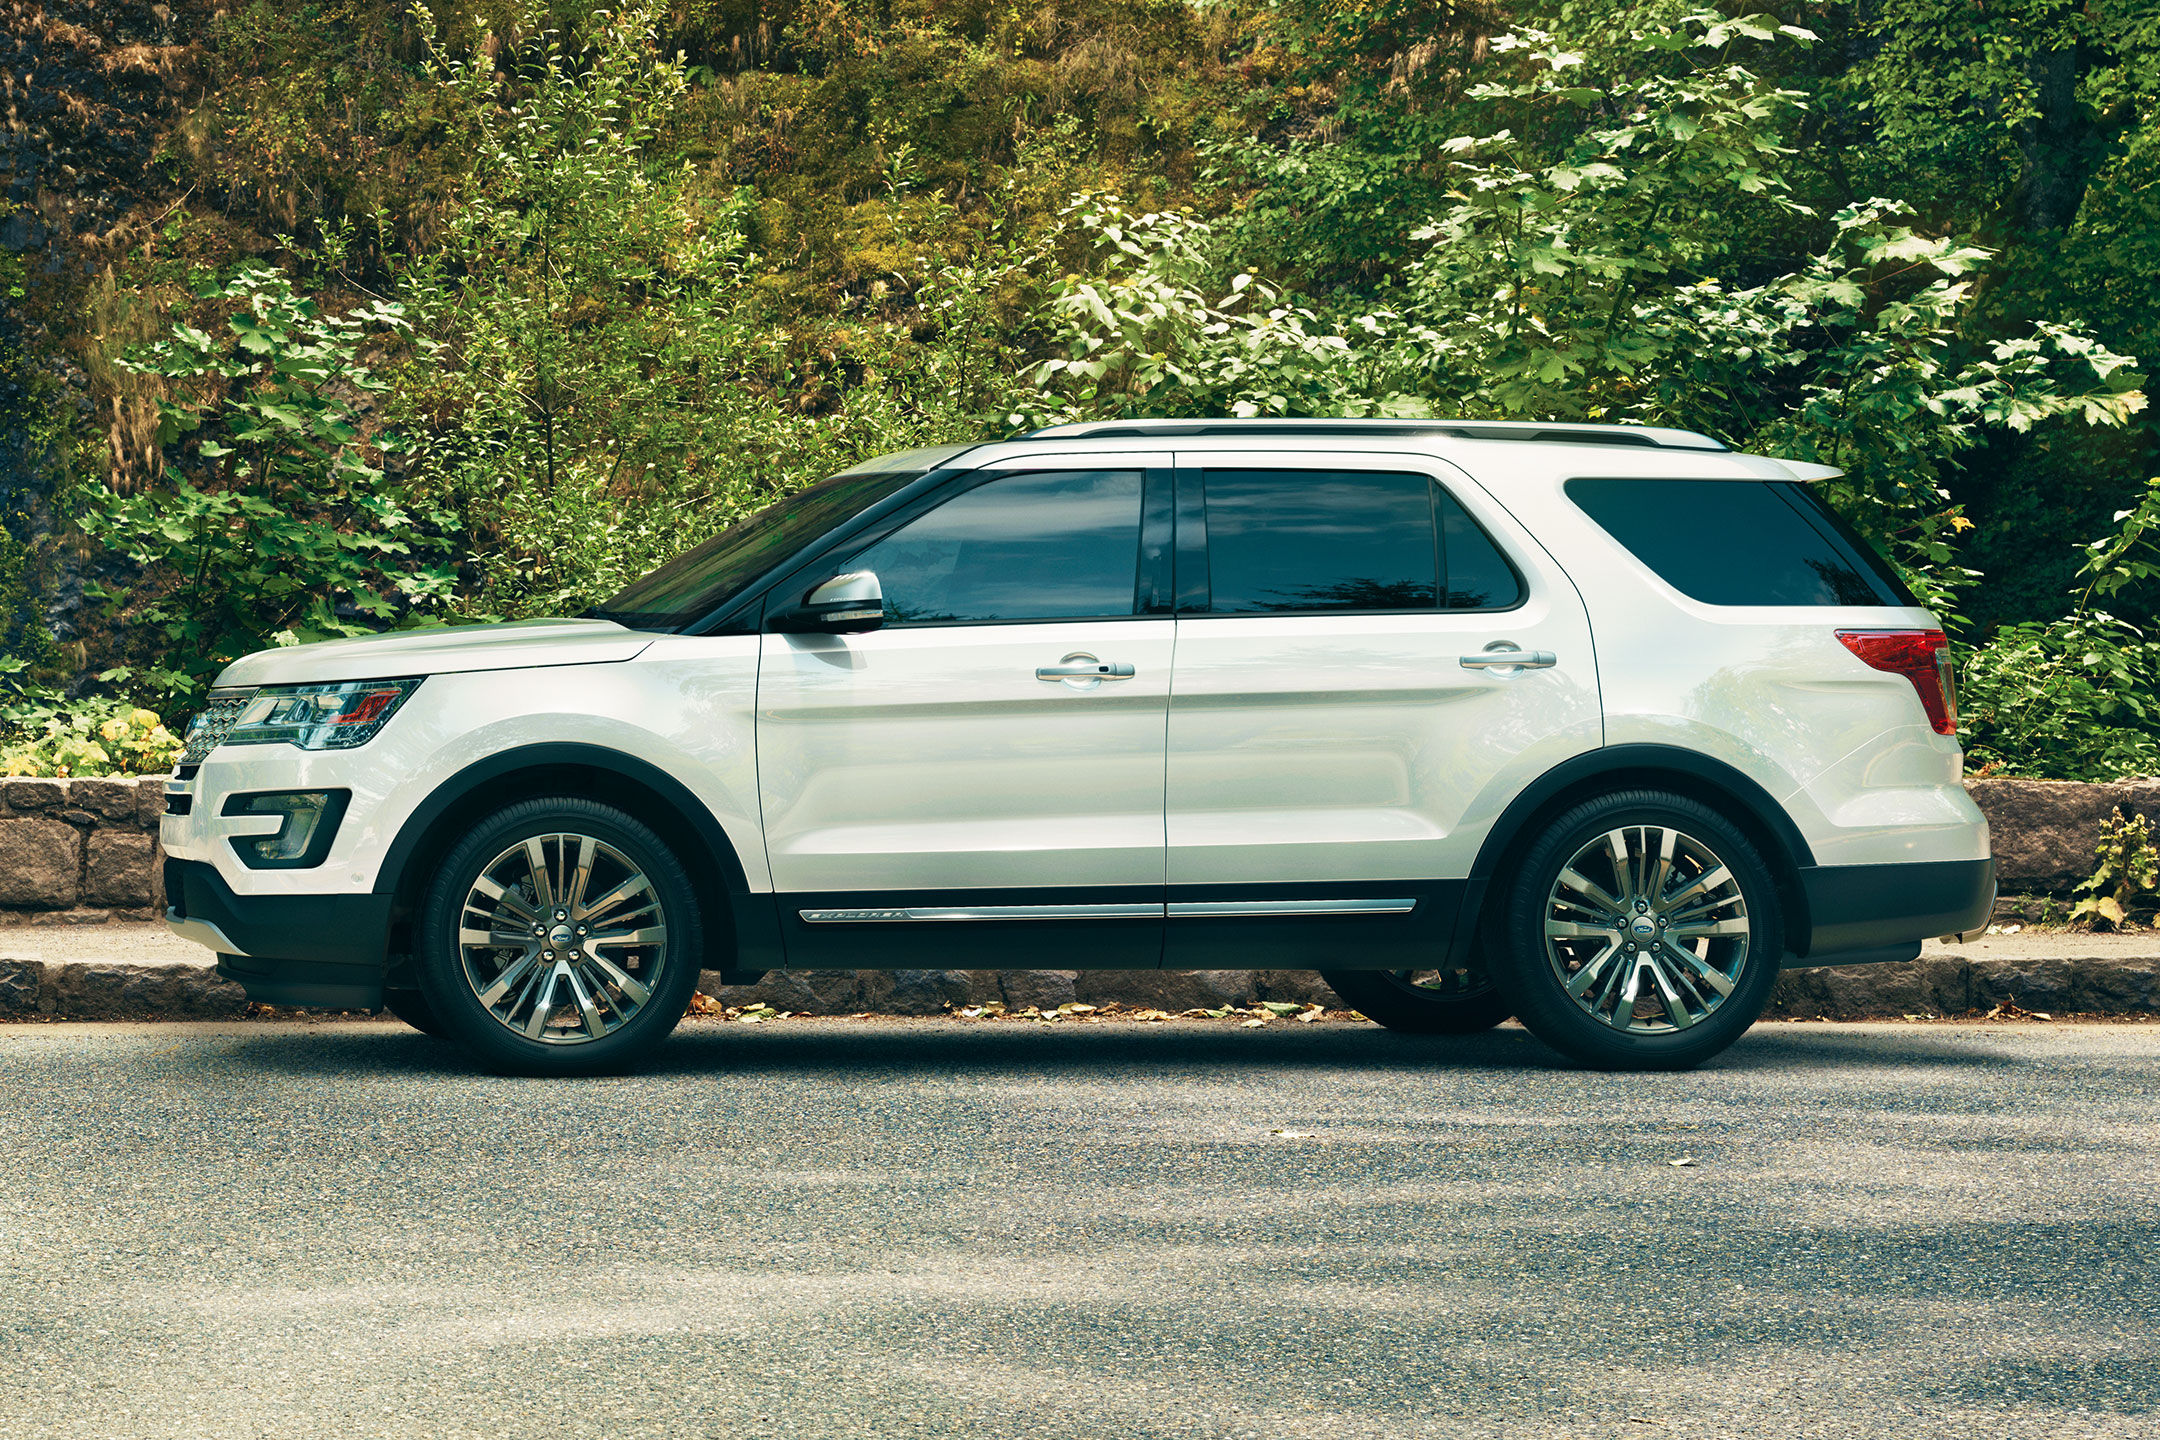 Ford Explorer On Rims >> 2017 Ford Explorer Overview | The News Wheel